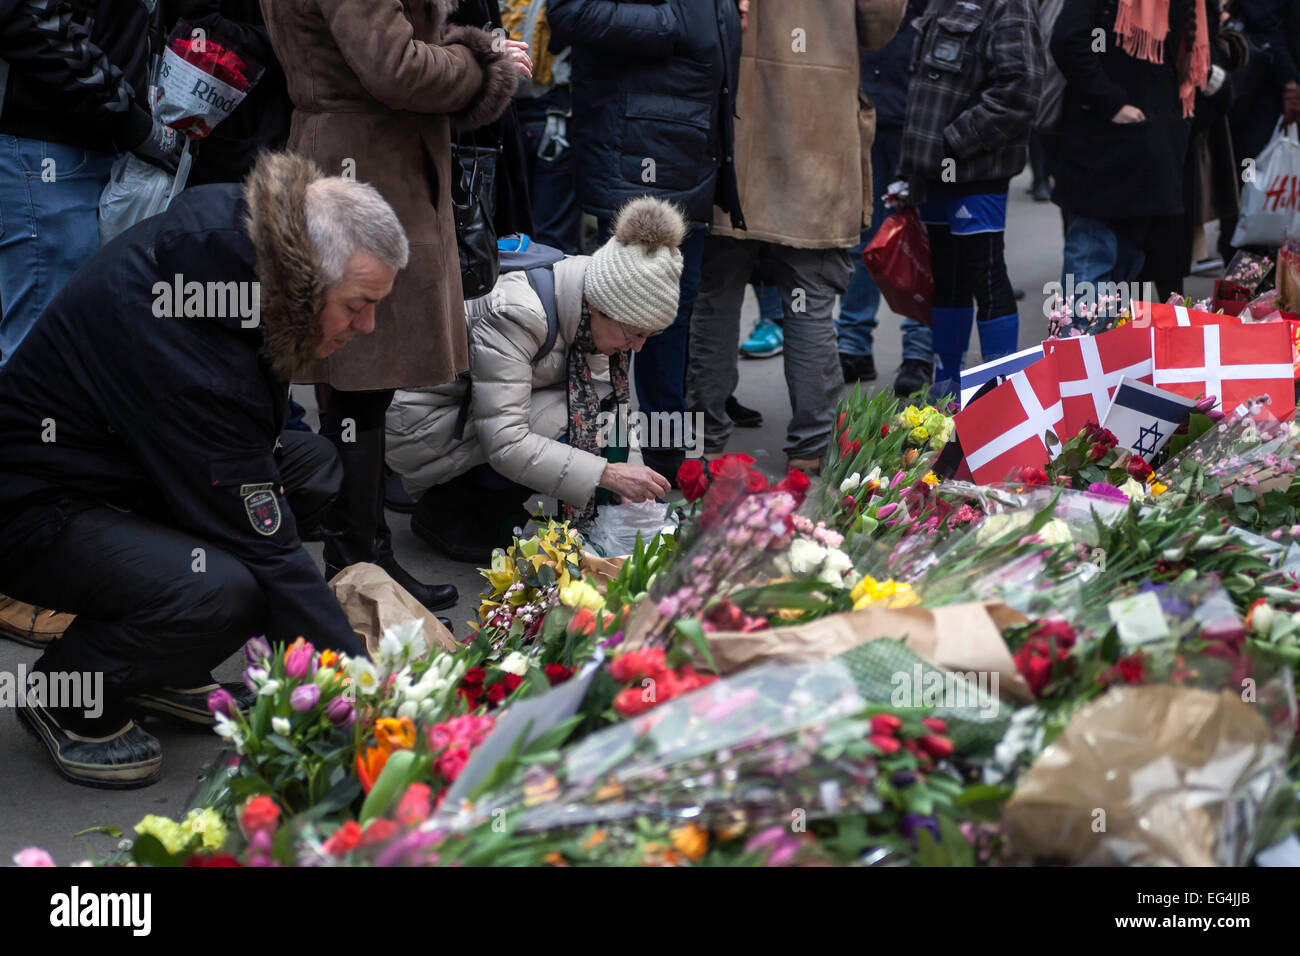 Copenhagen denmark 16th february 2015 copenhageners is laying copenhageners is laying flowers in front of the jewish synagogue in copenhagen in sympathy with the murdered dan uzan and the citys jewish community izmirmasajfo